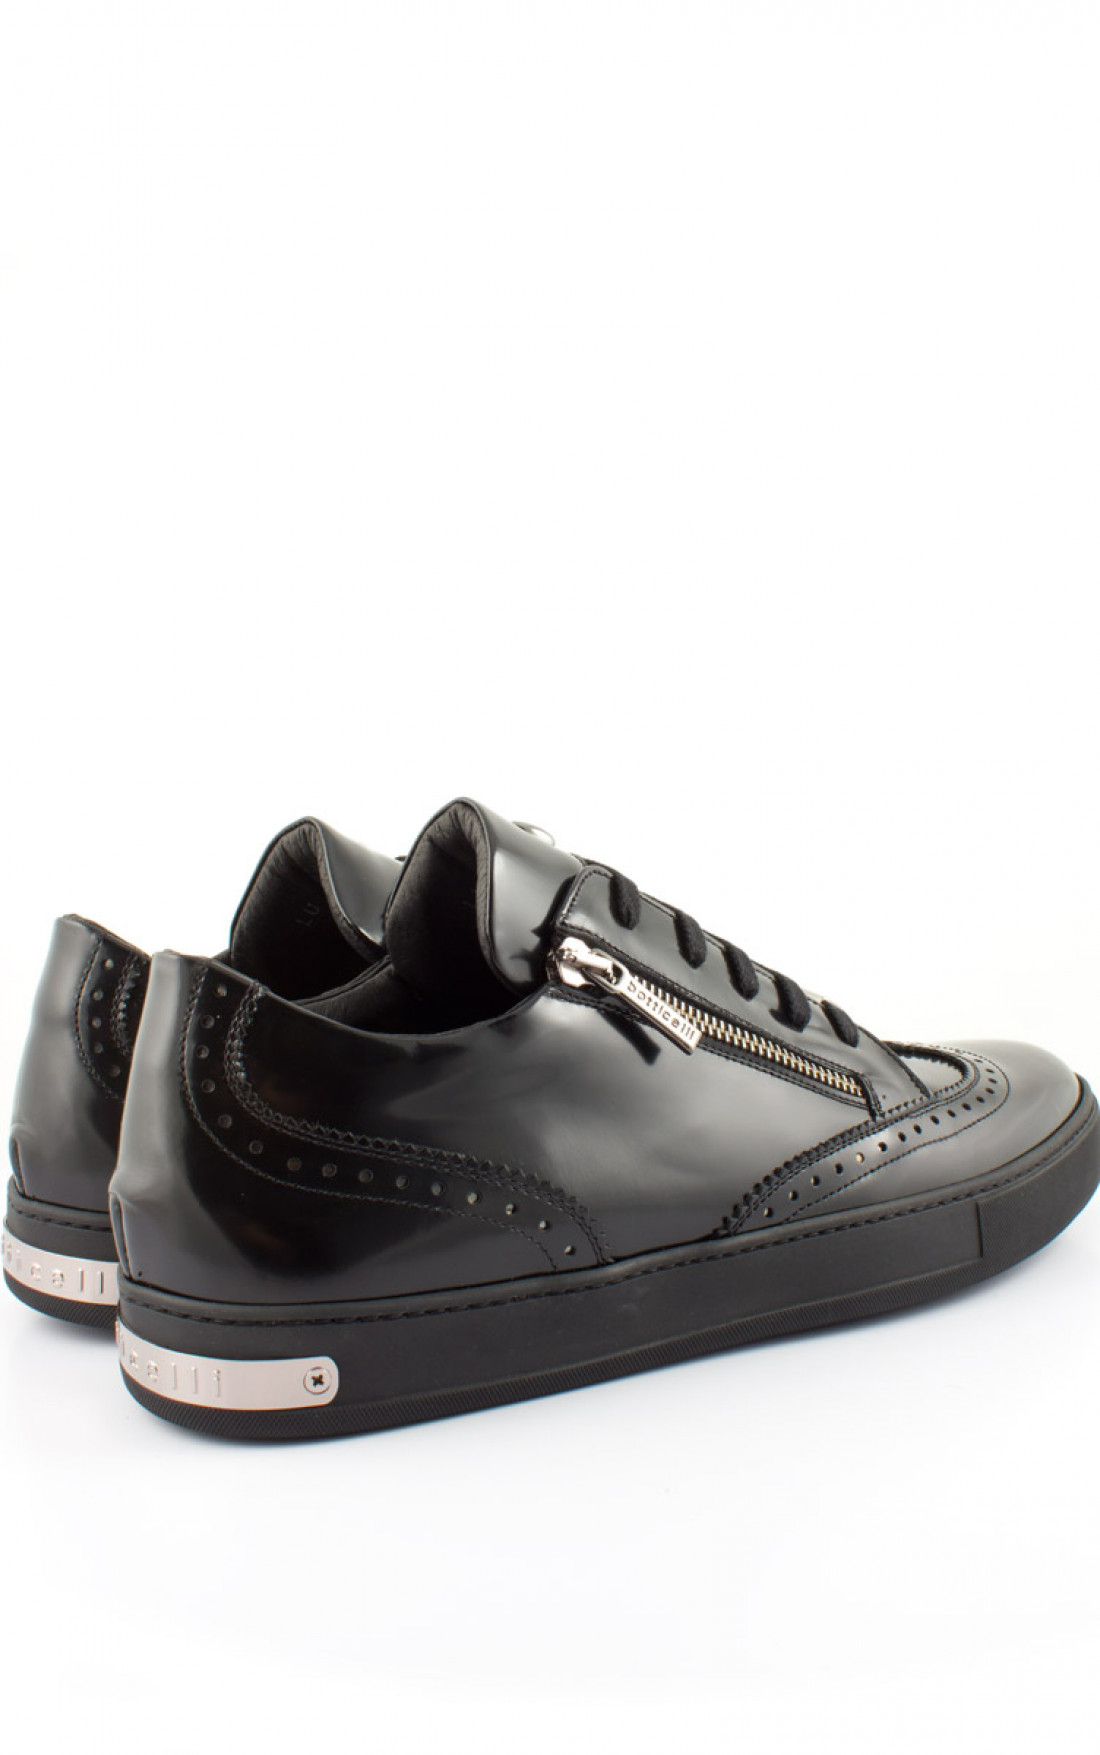 4754c2c464a5 ... Roberto Botticelli -  Brogue  Shoes Black Pair Back (LU27461F) ...